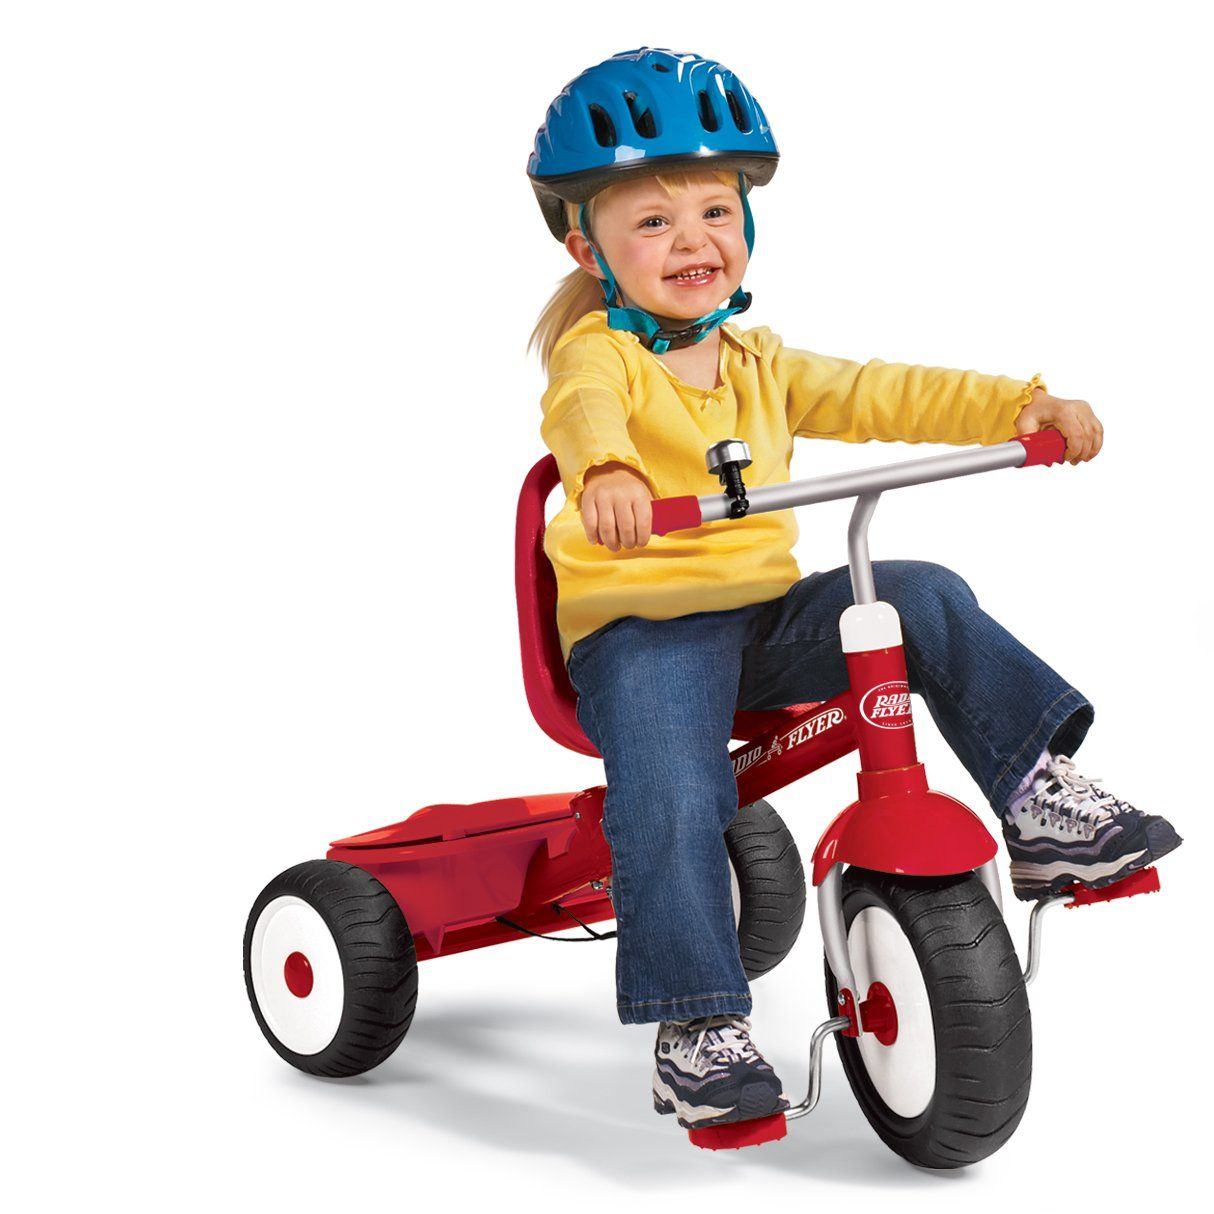 5 Best Tricycle For Toddlers With Reviews For Choosing The Classic One Tricycle Adult Tricycle Kids Bike